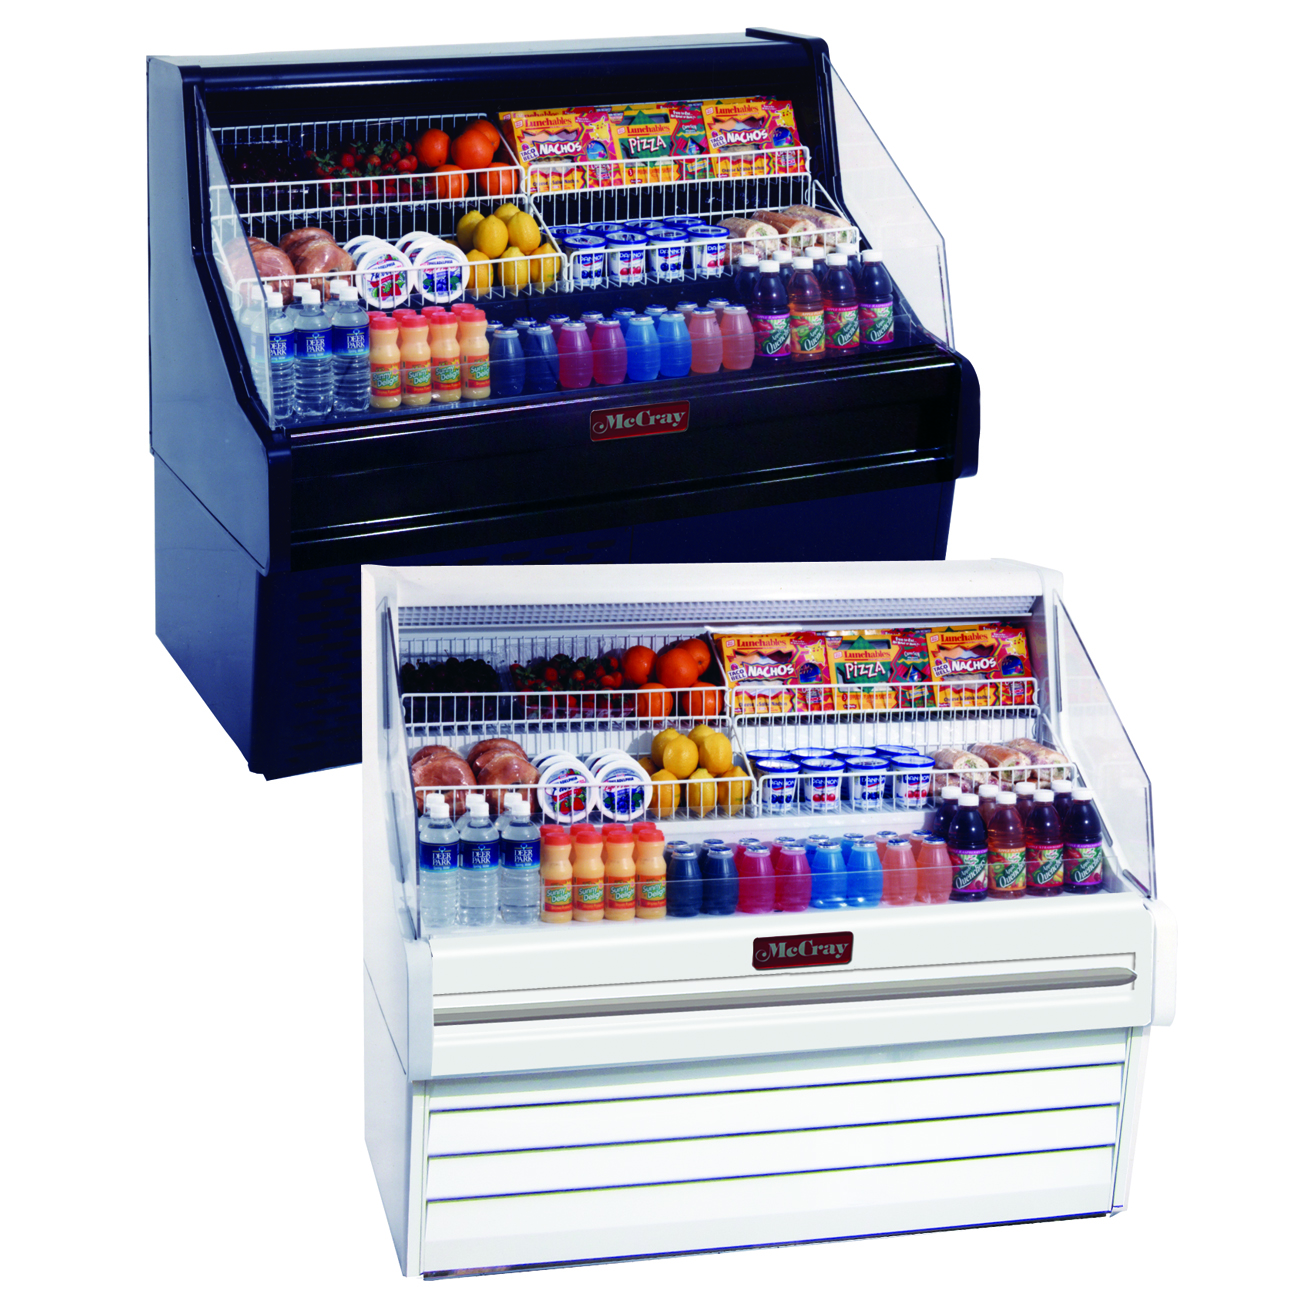 Howard-McCray SC-OS30E-4 merchandiser, open refrigerated display